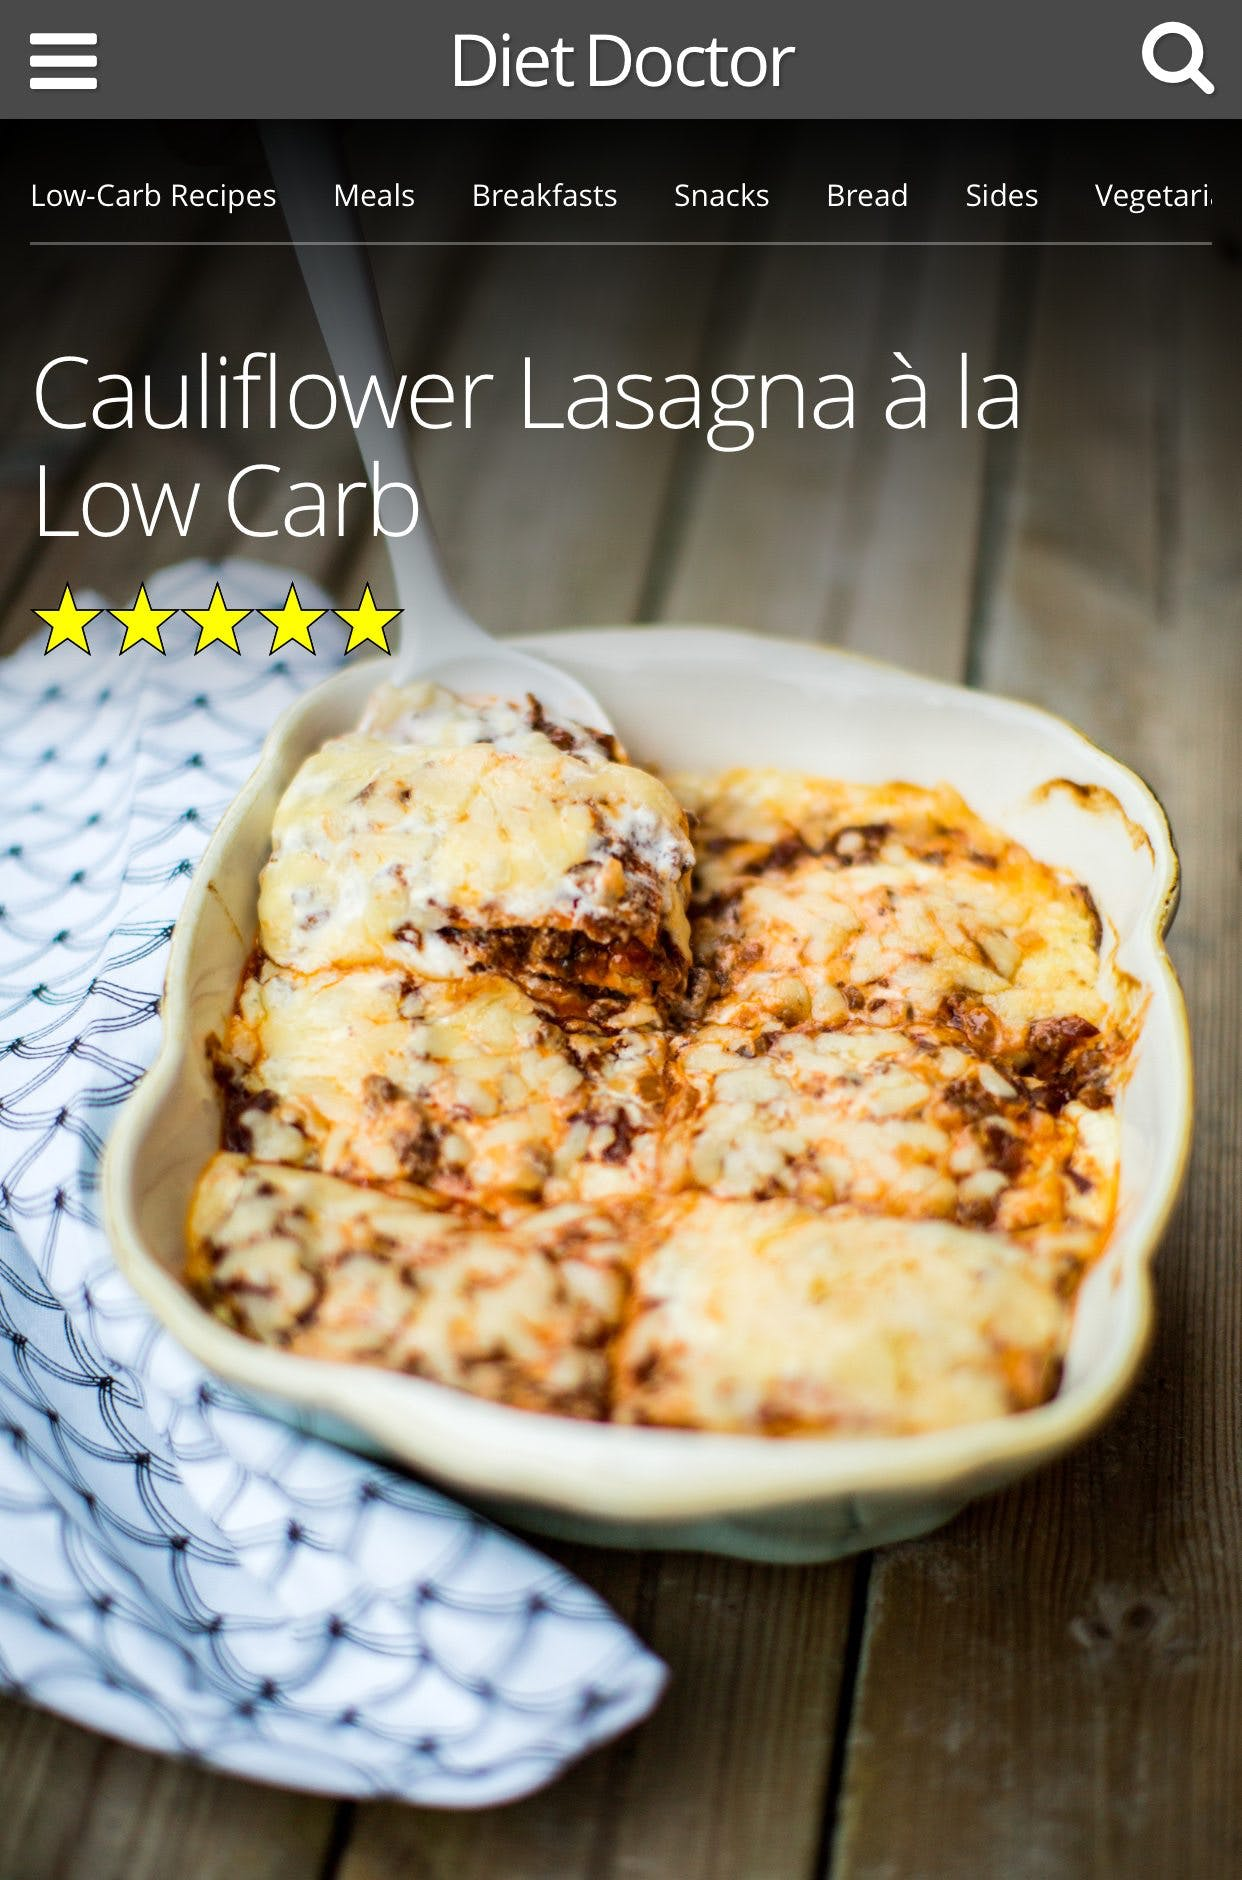 Rate Your Favorite Low-Carb Recipes